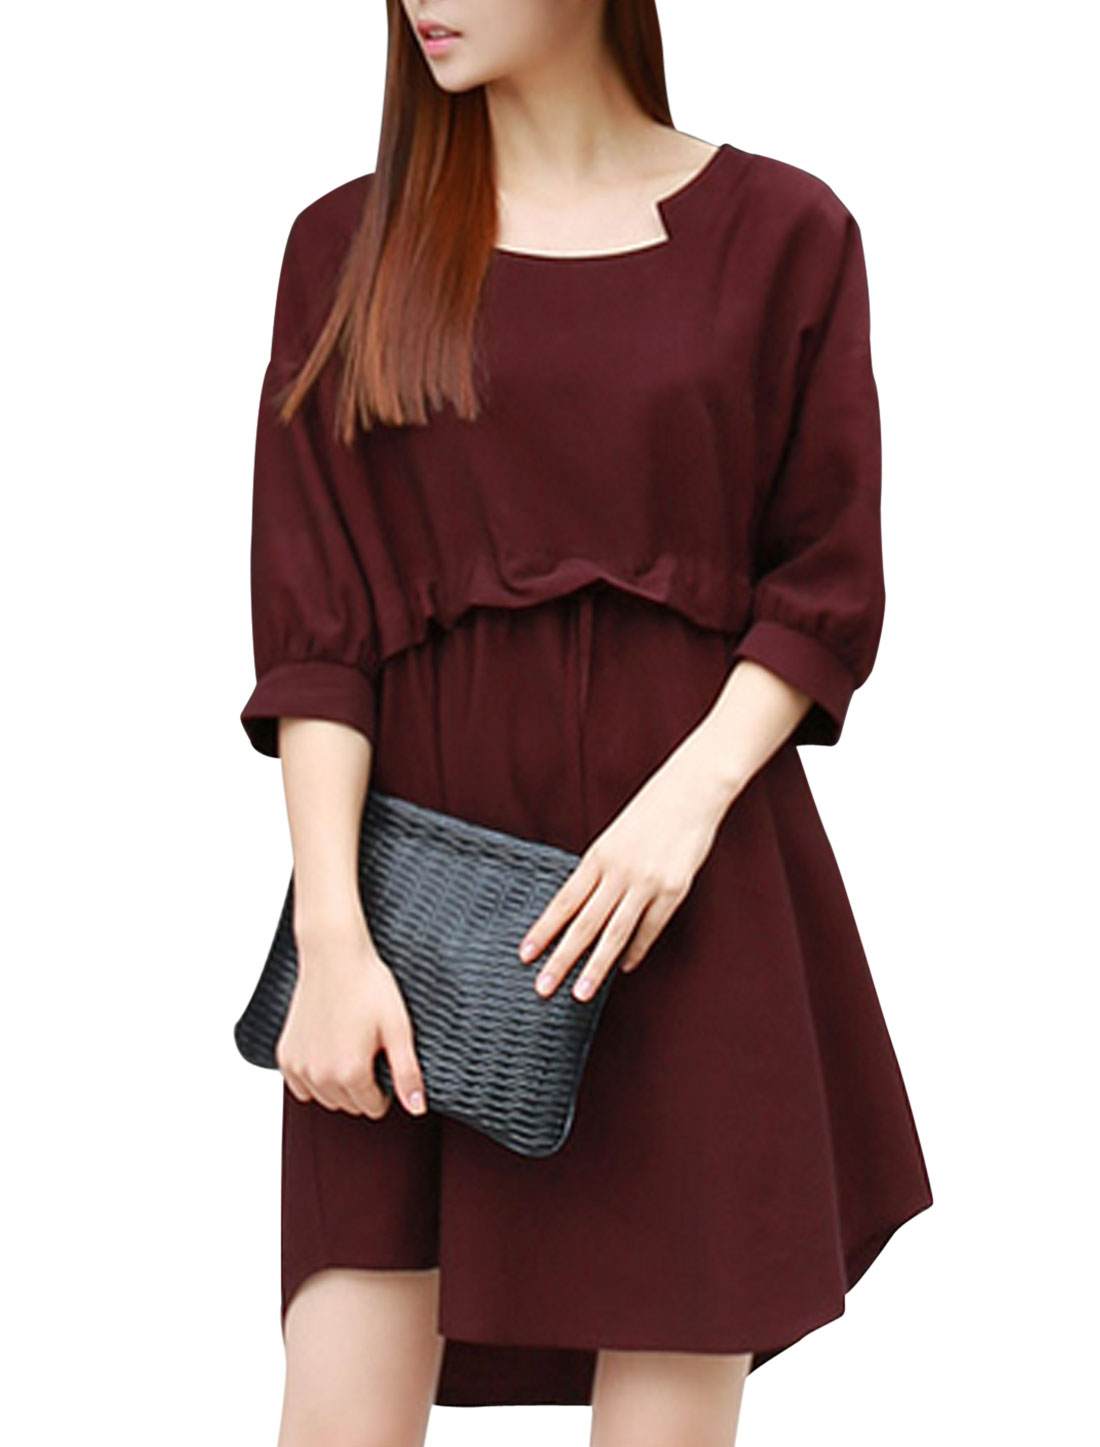 Ladiees Burgundy Slipover Drawstring Waist Batwing Sleeves Loose Unlined Dress S